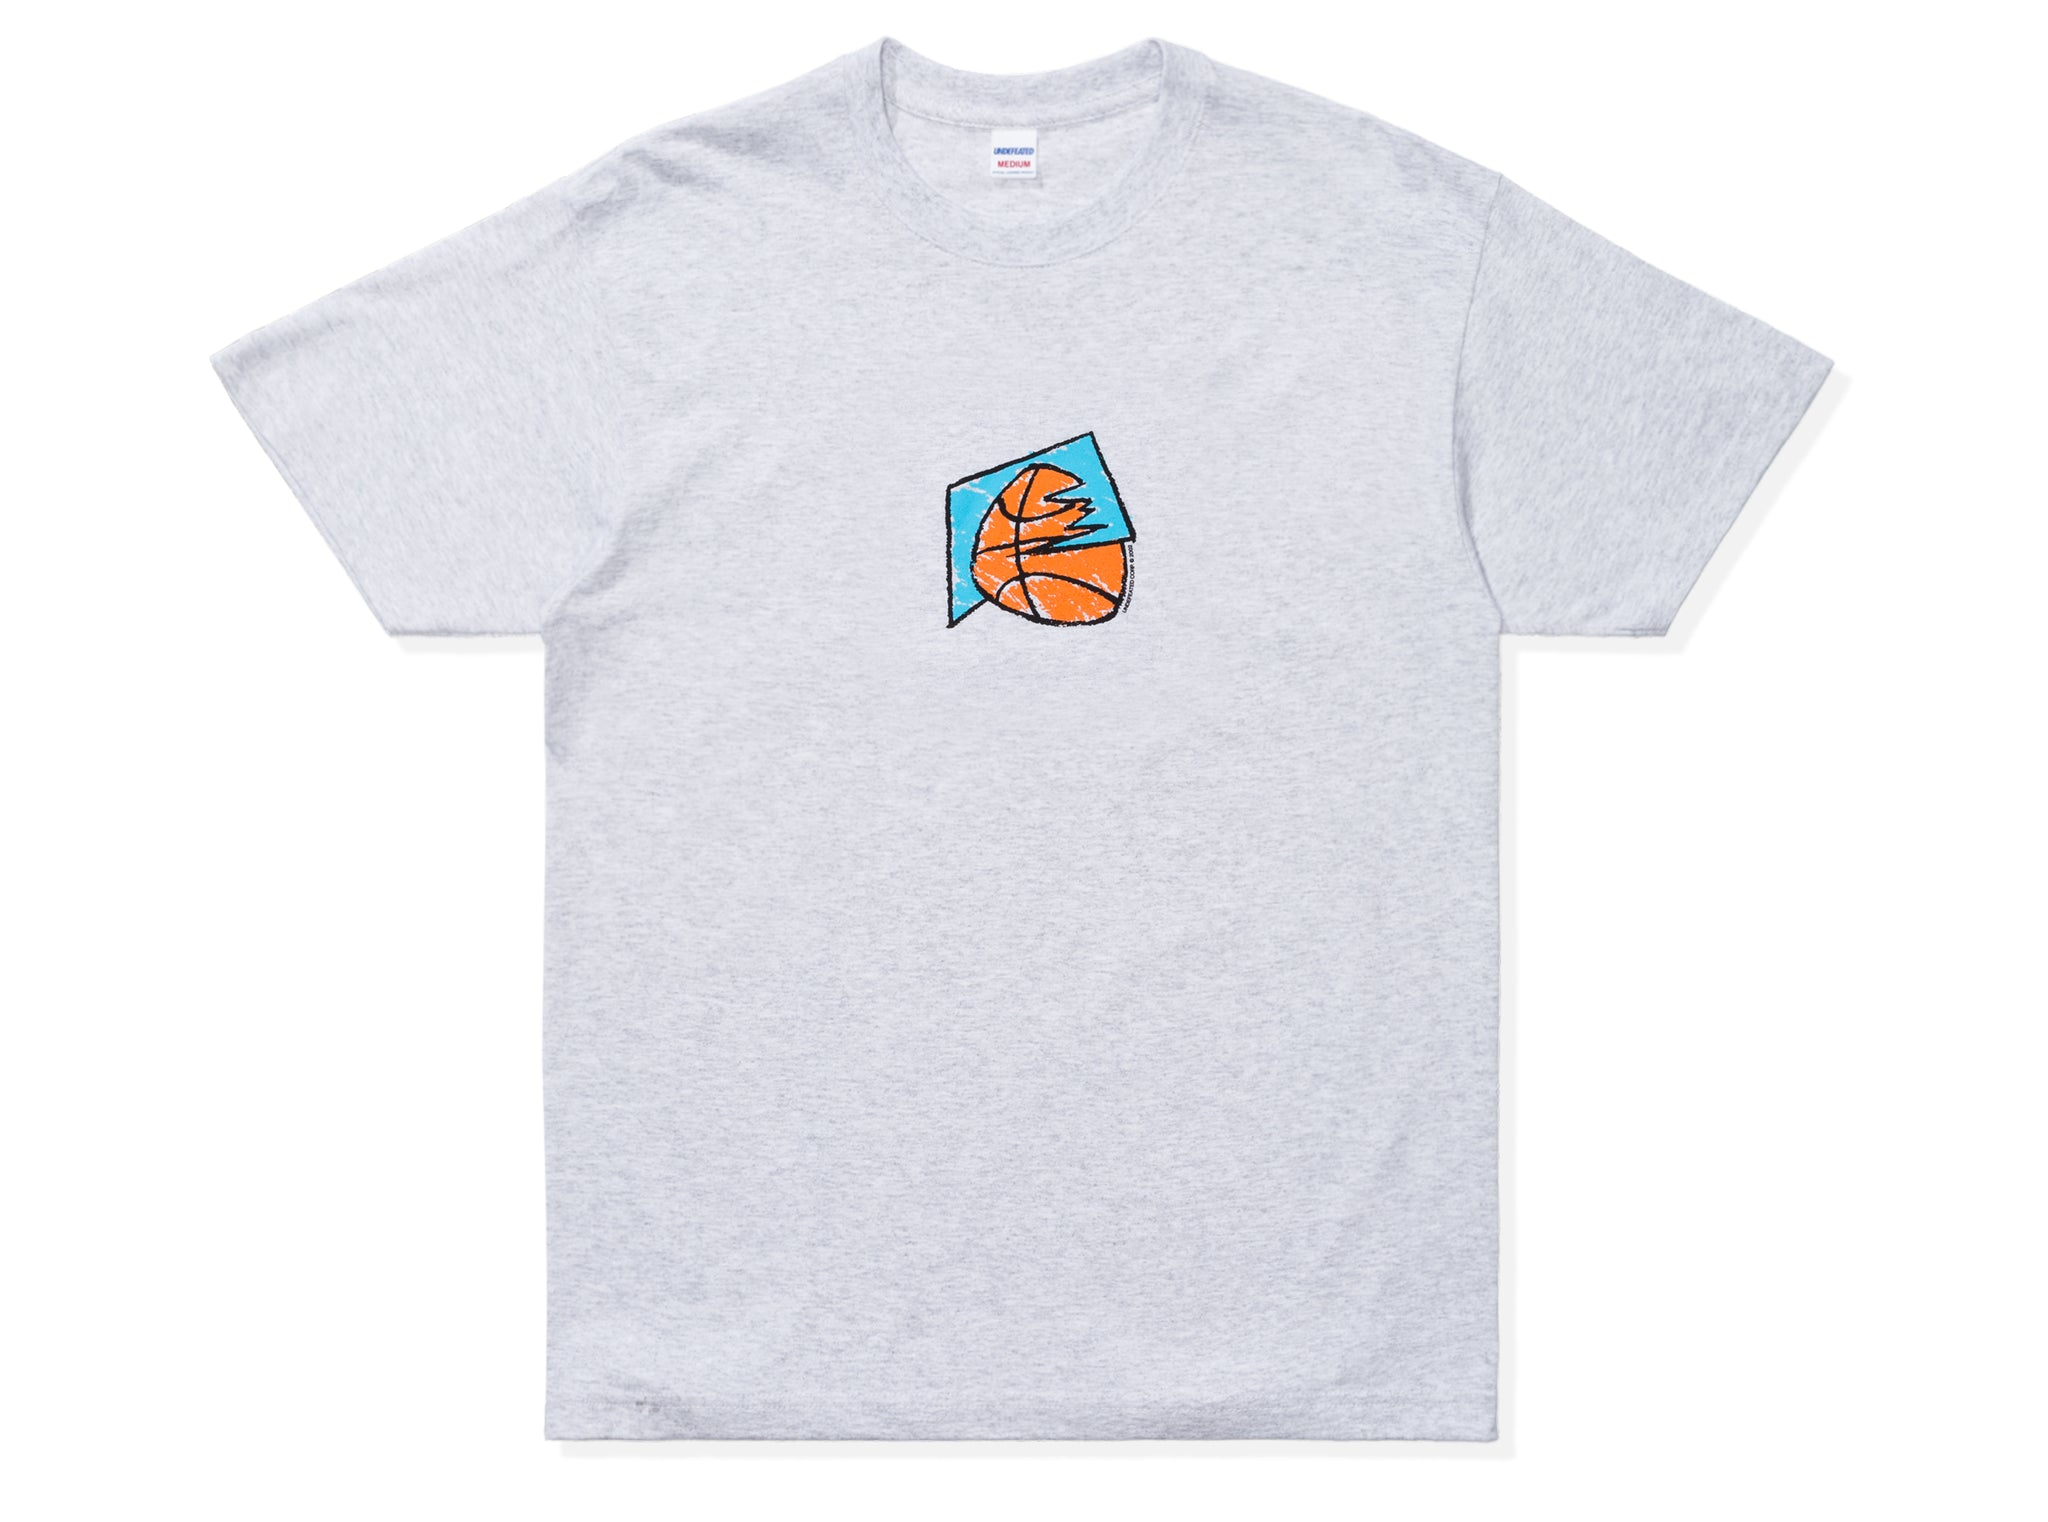 UNDEFEATED BACKBOARD TEE